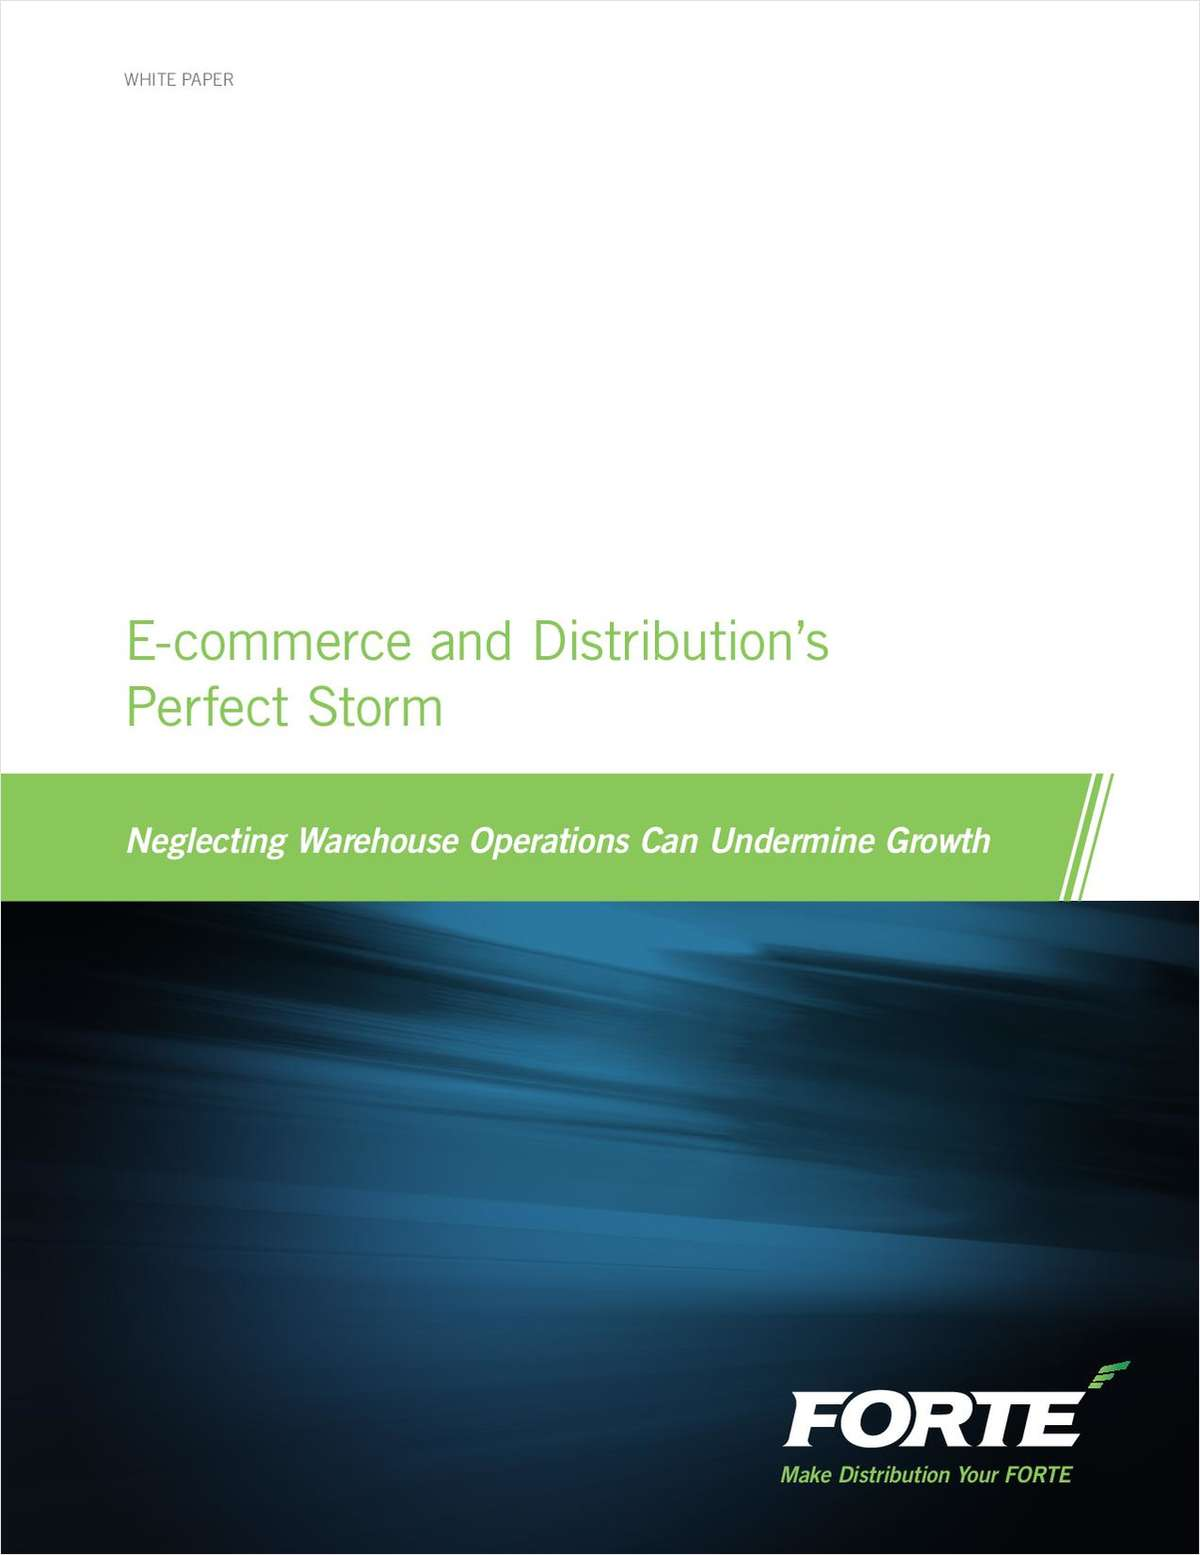 E-Commerce and Distribution's Perfect Storm - Neglecting Warehouse Operations Can Undermine Growth